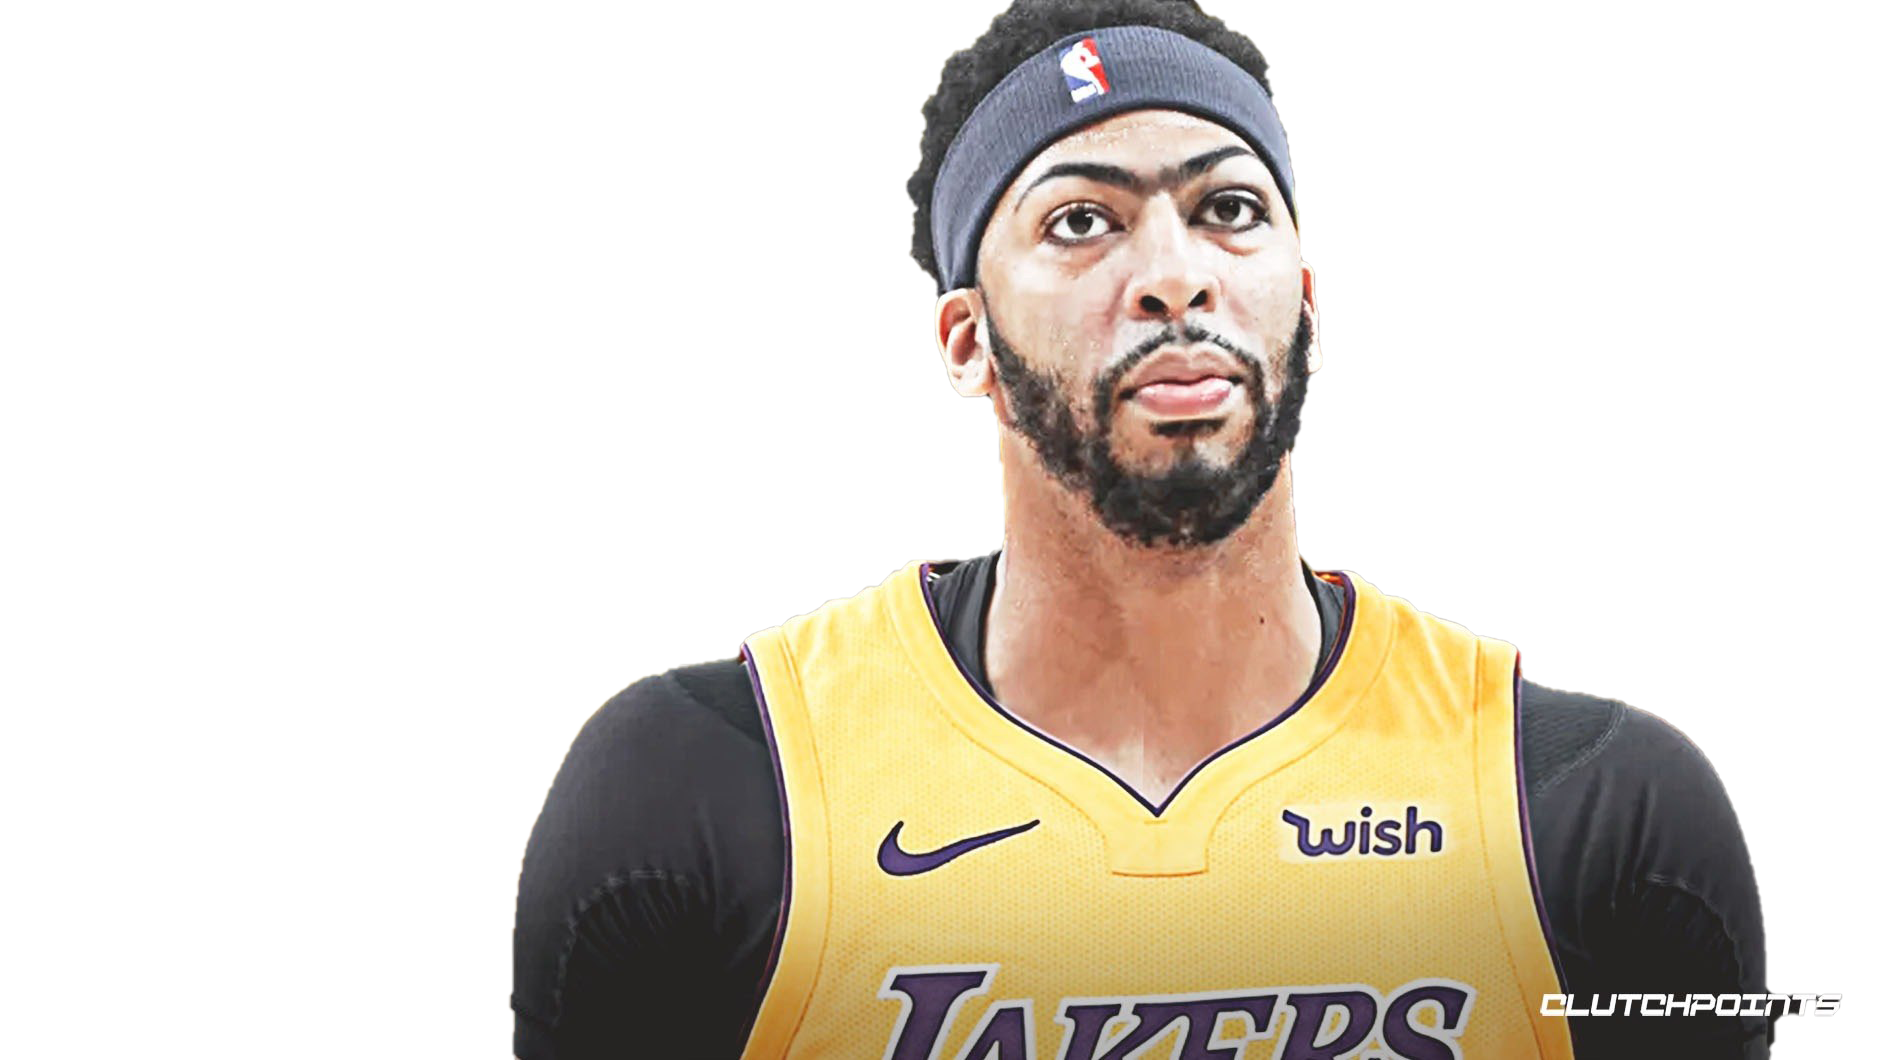 Anthony Davis Download Transparent Png Image 1890x1060 Download Hd Wallpaper Wallpapertip